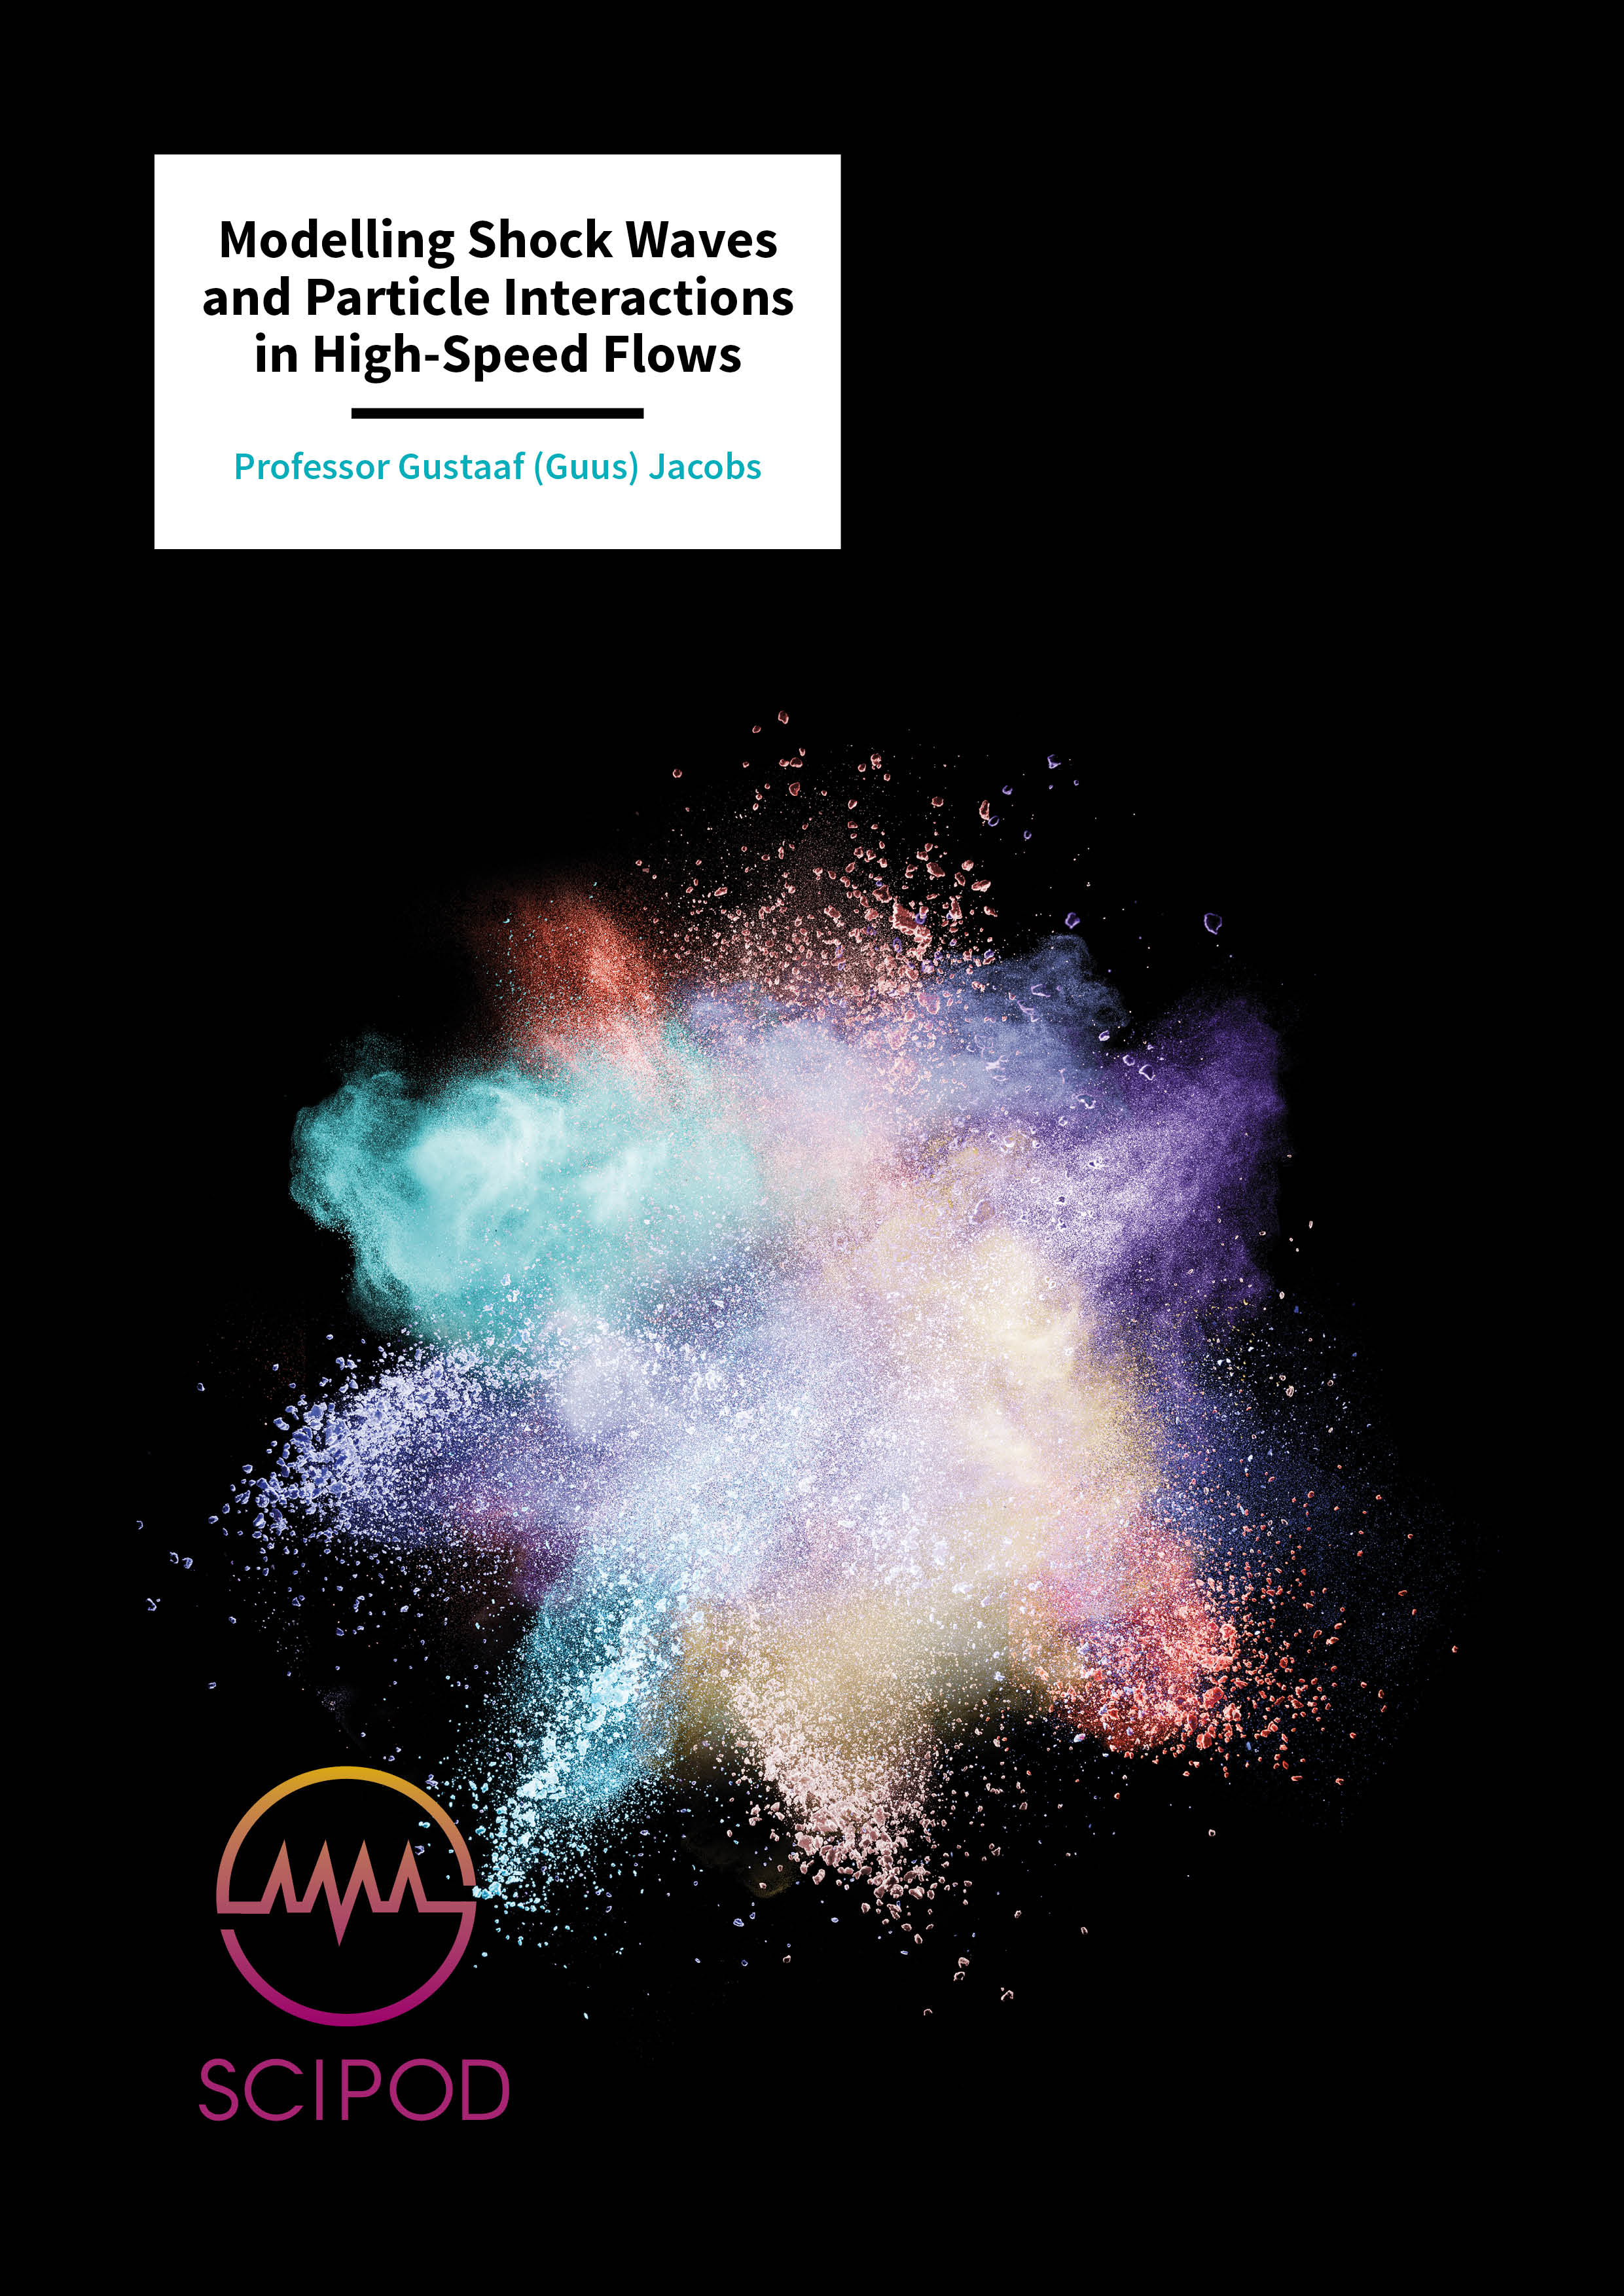 Modelling Shock Waves and Particle Interactions in High-Speed Flows – Professor Gustaaf Jacobs, San Diego State University